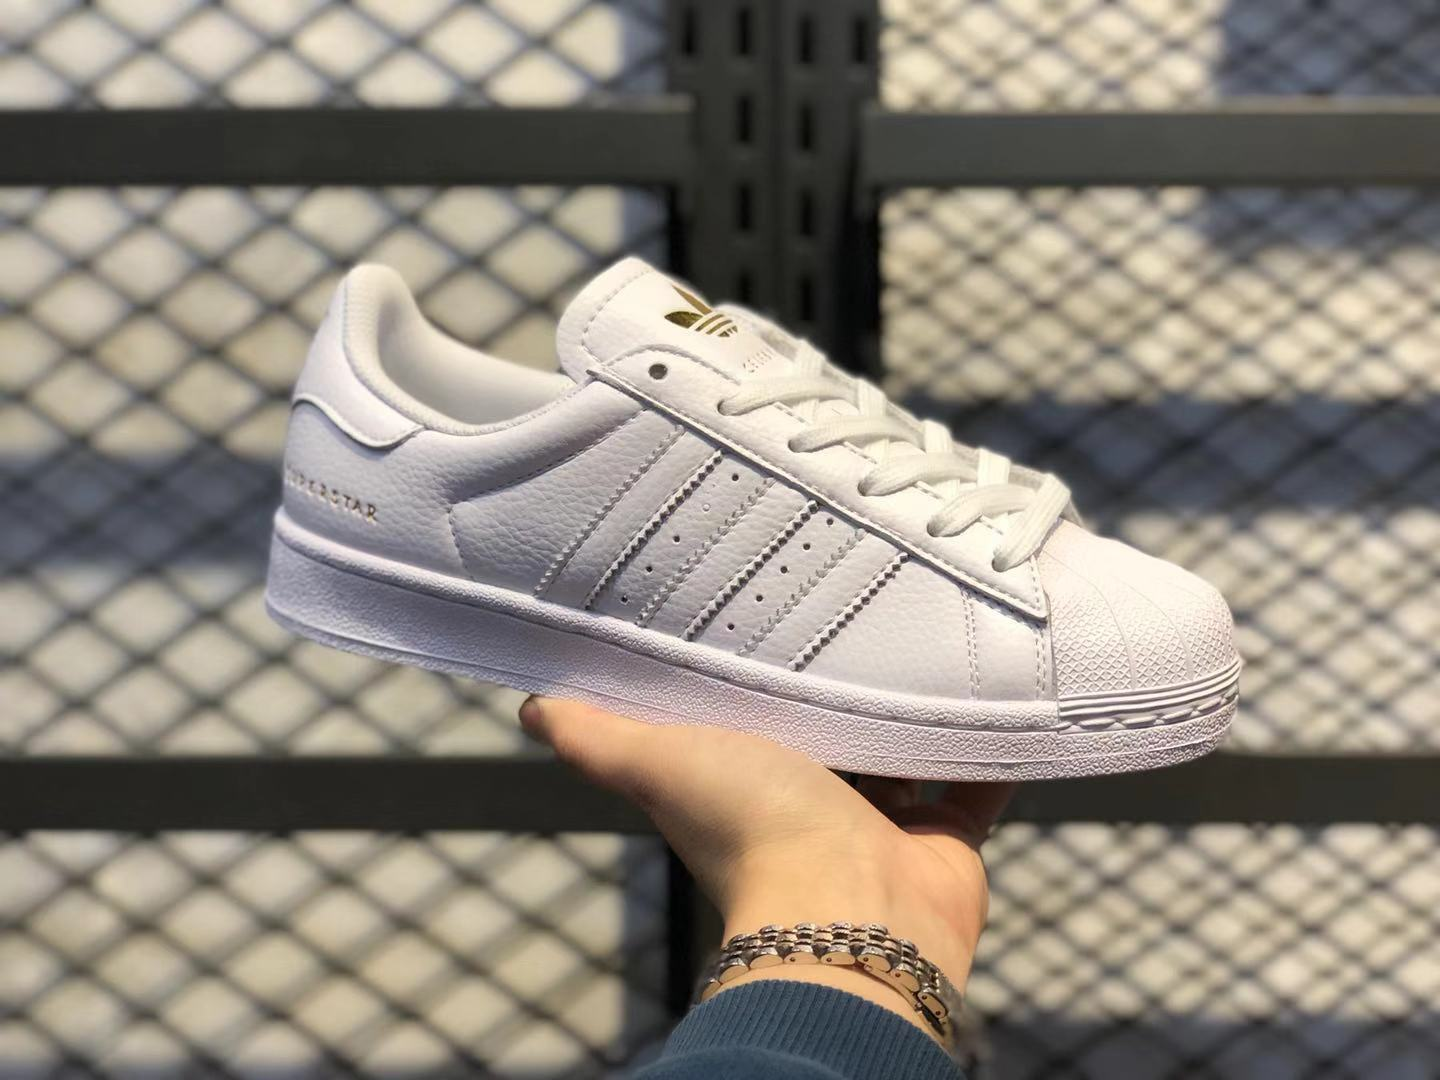 Adidas Superstar White/Gold Women's Life Classic Shoes Online Buy FU9196